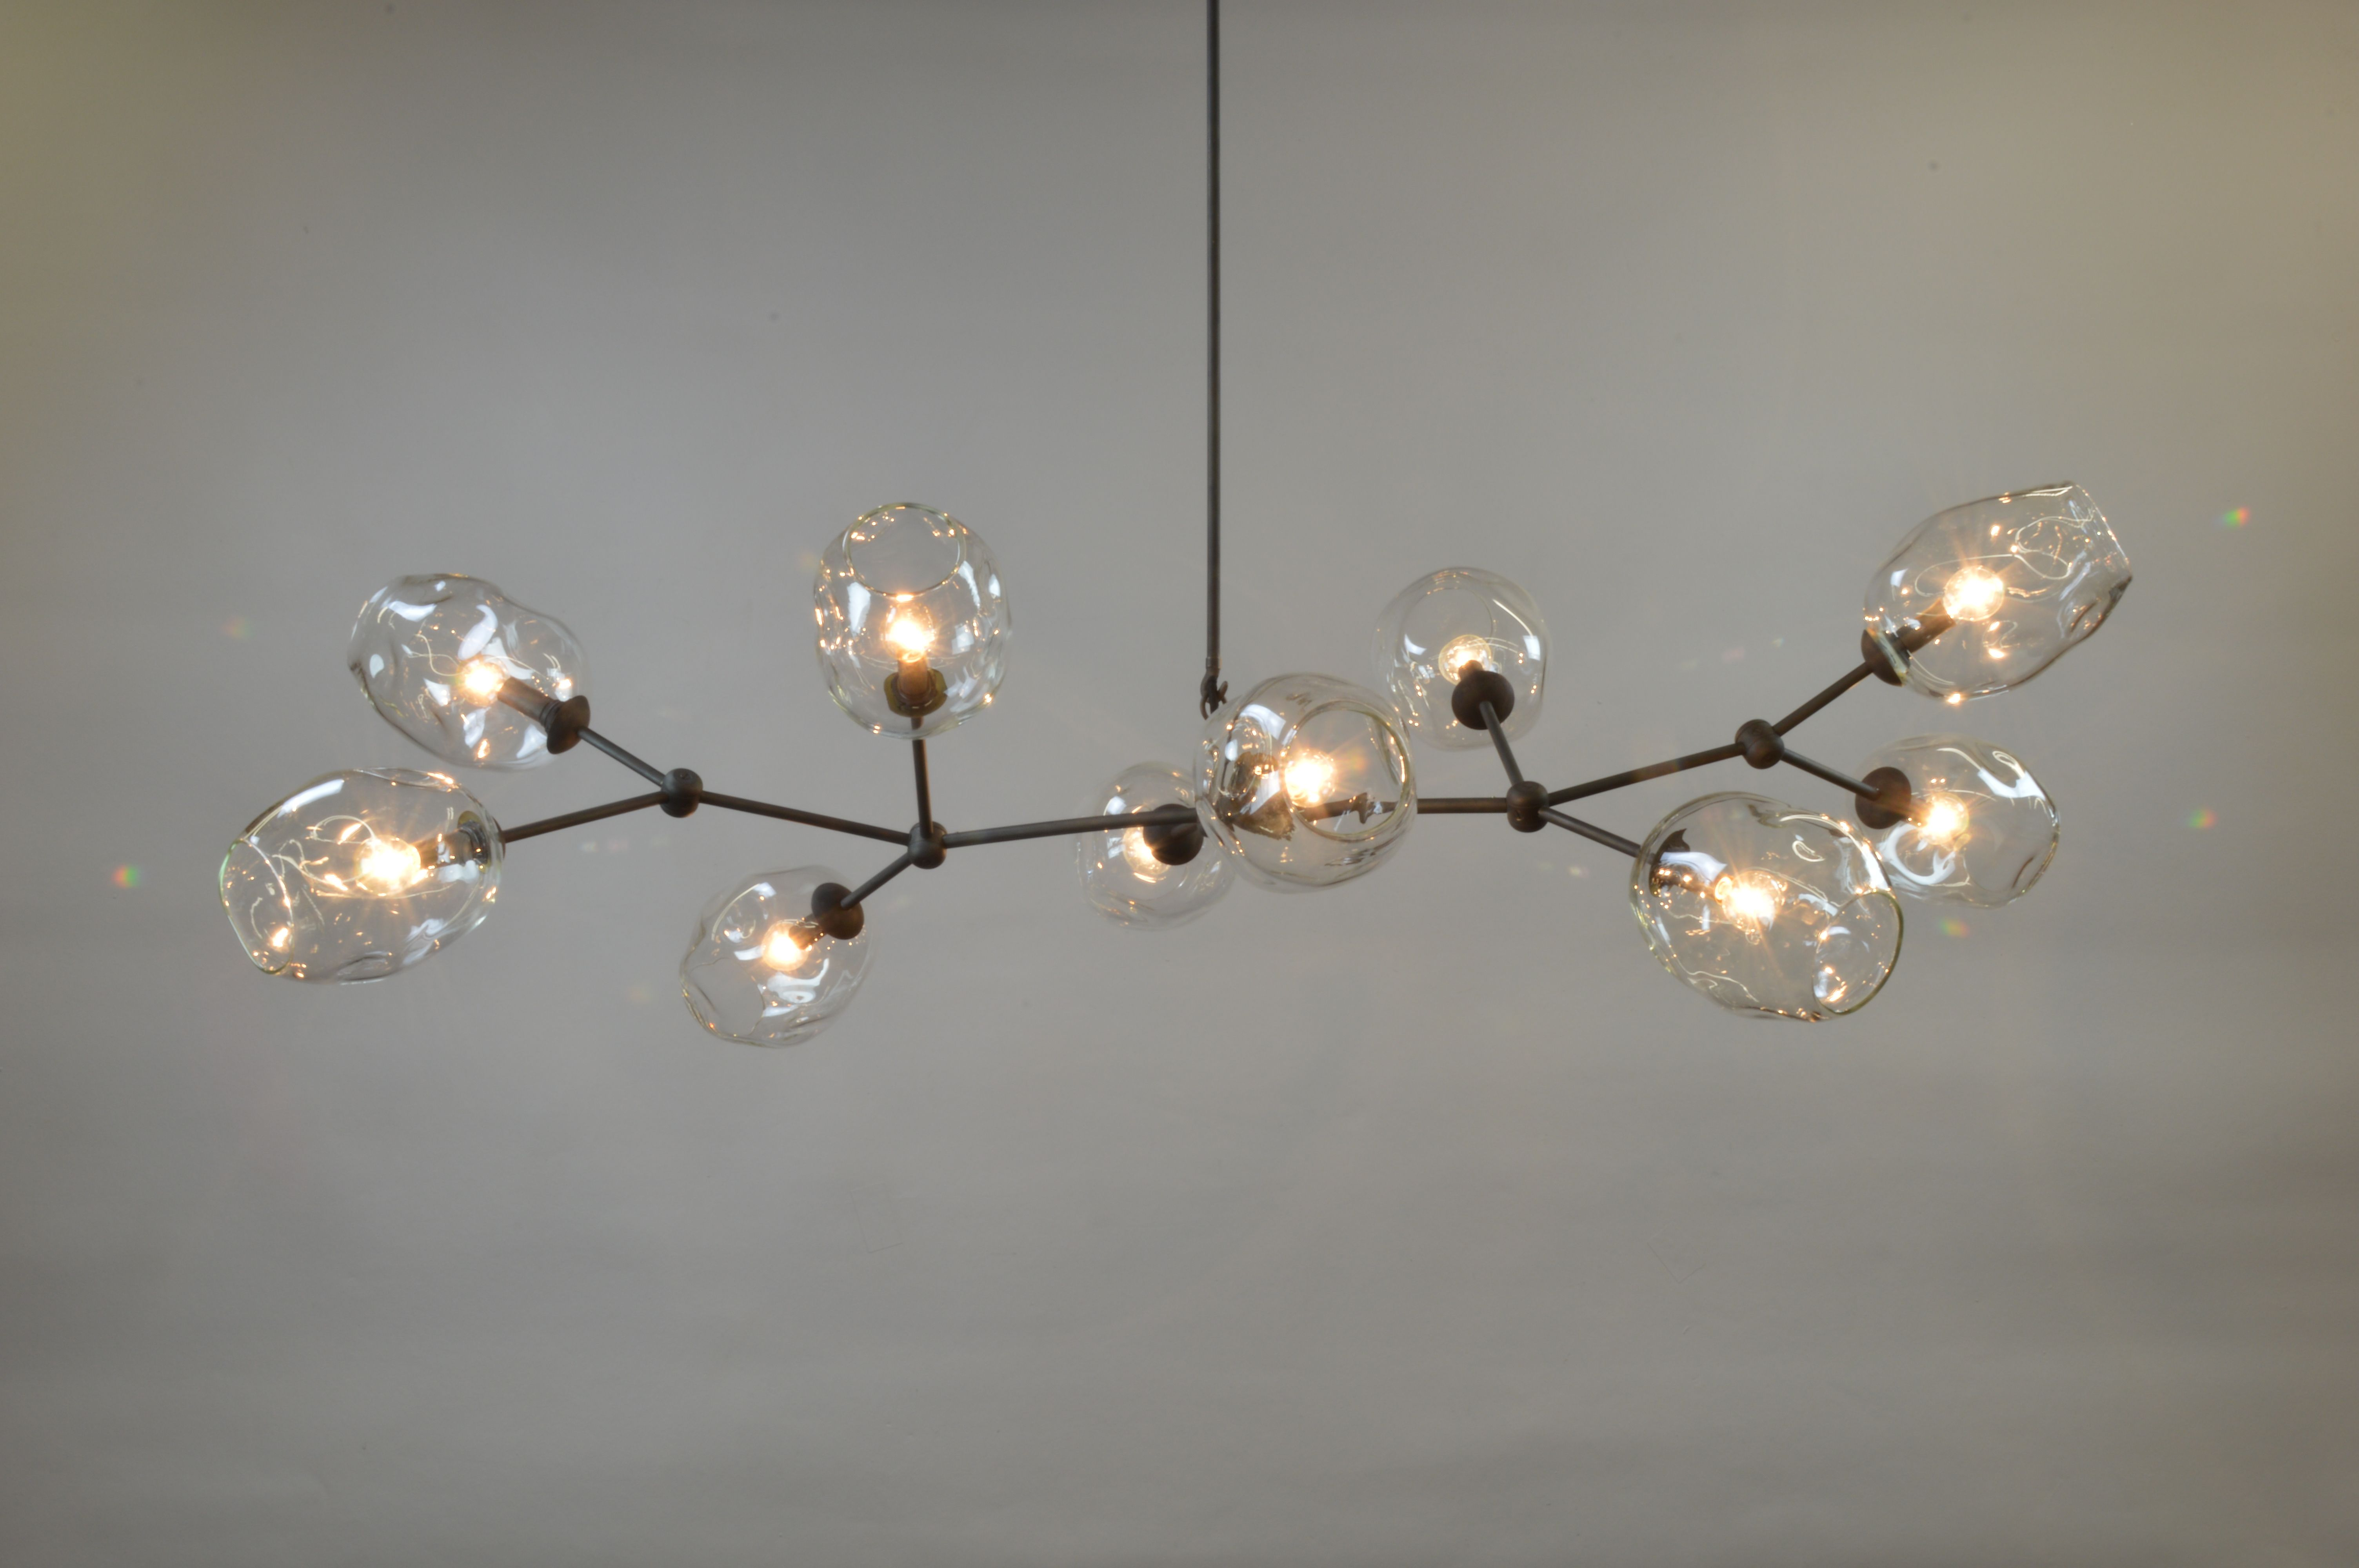 Horizontal Staccato Branch Chandelier With Clear Globes And Oil Rubbed Bronze Finish By Providence Branch Chandelier Bubble Chandelier Modern Branch Chandelier